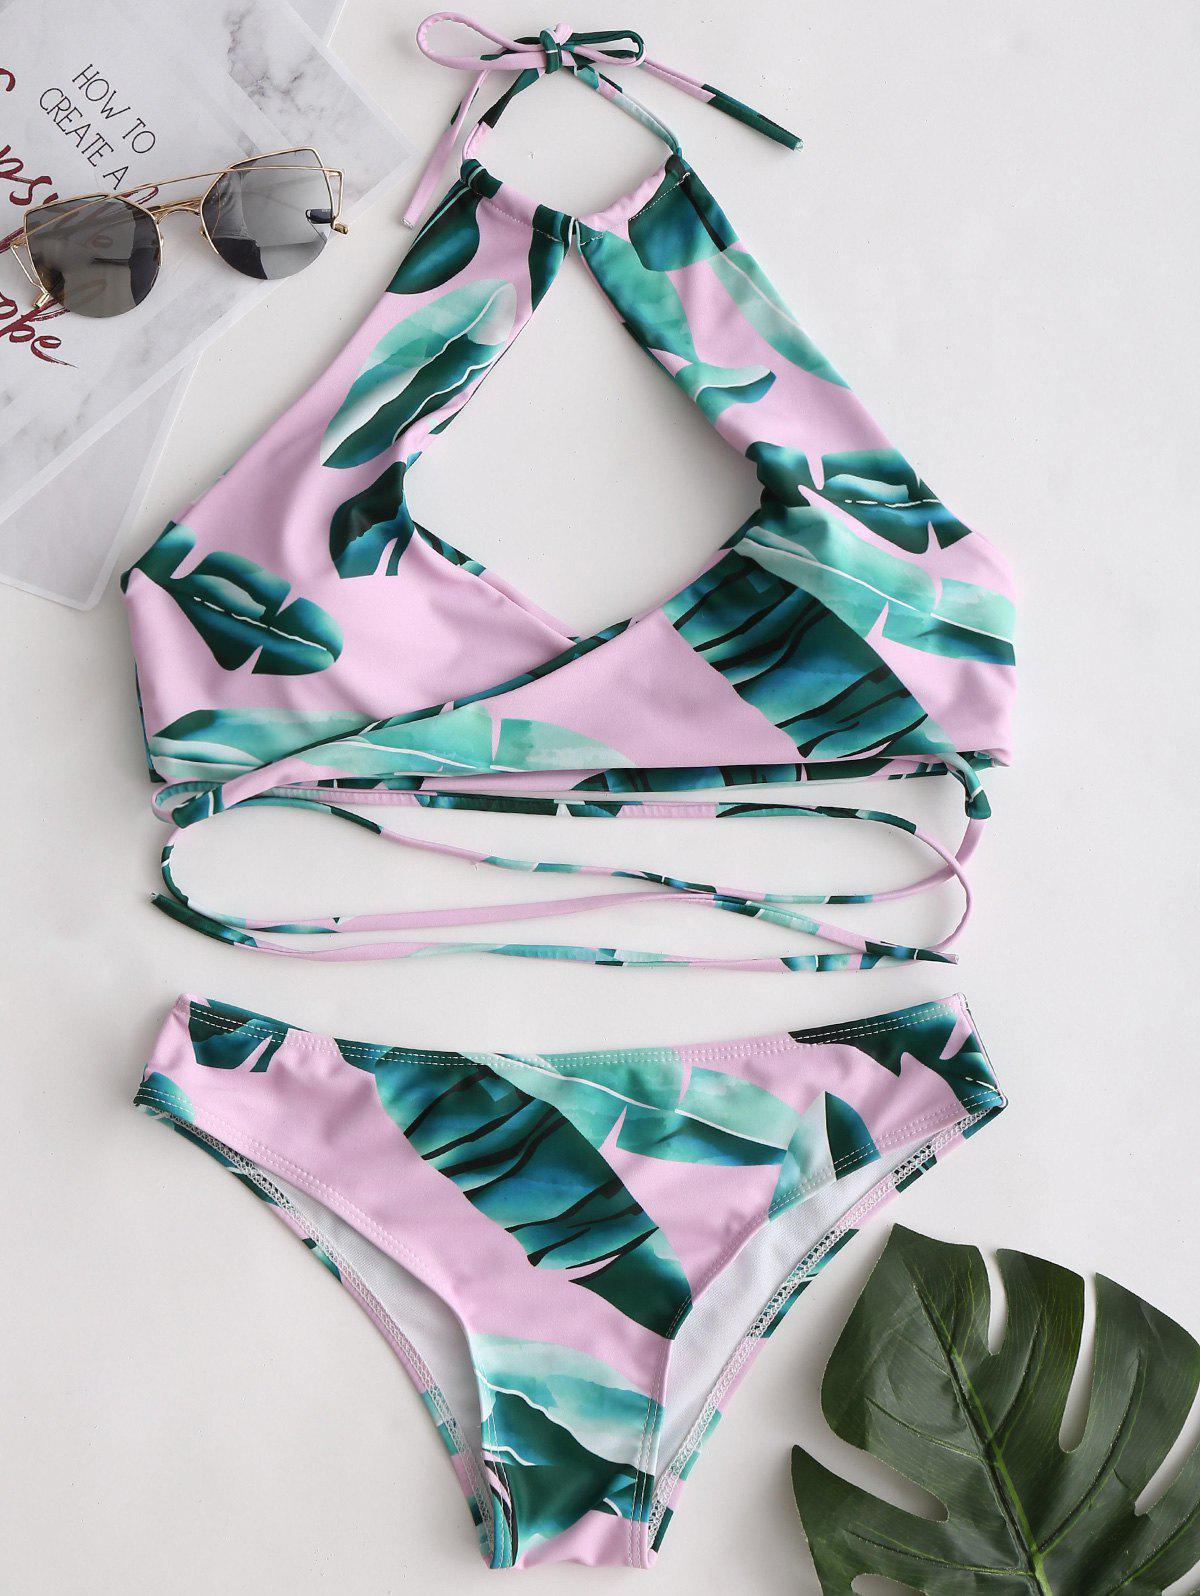 Wrap Leaves Pattern Bikini Set wrap leaves pattern bikini set